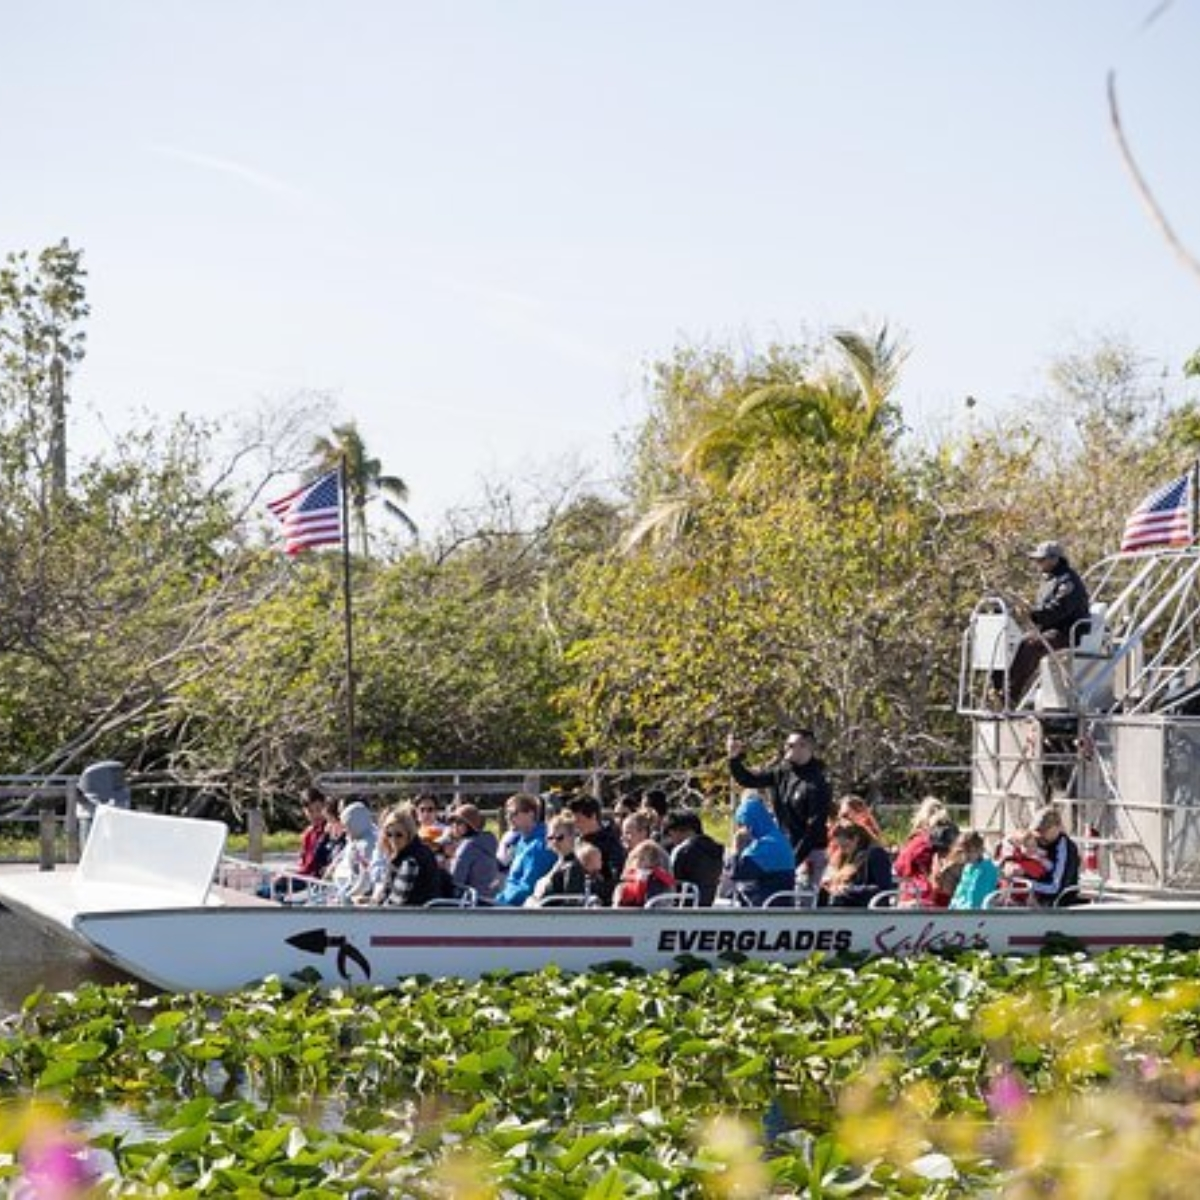 Miami Everglades Airboat Adventure with Biscayne Bay Cruise Images